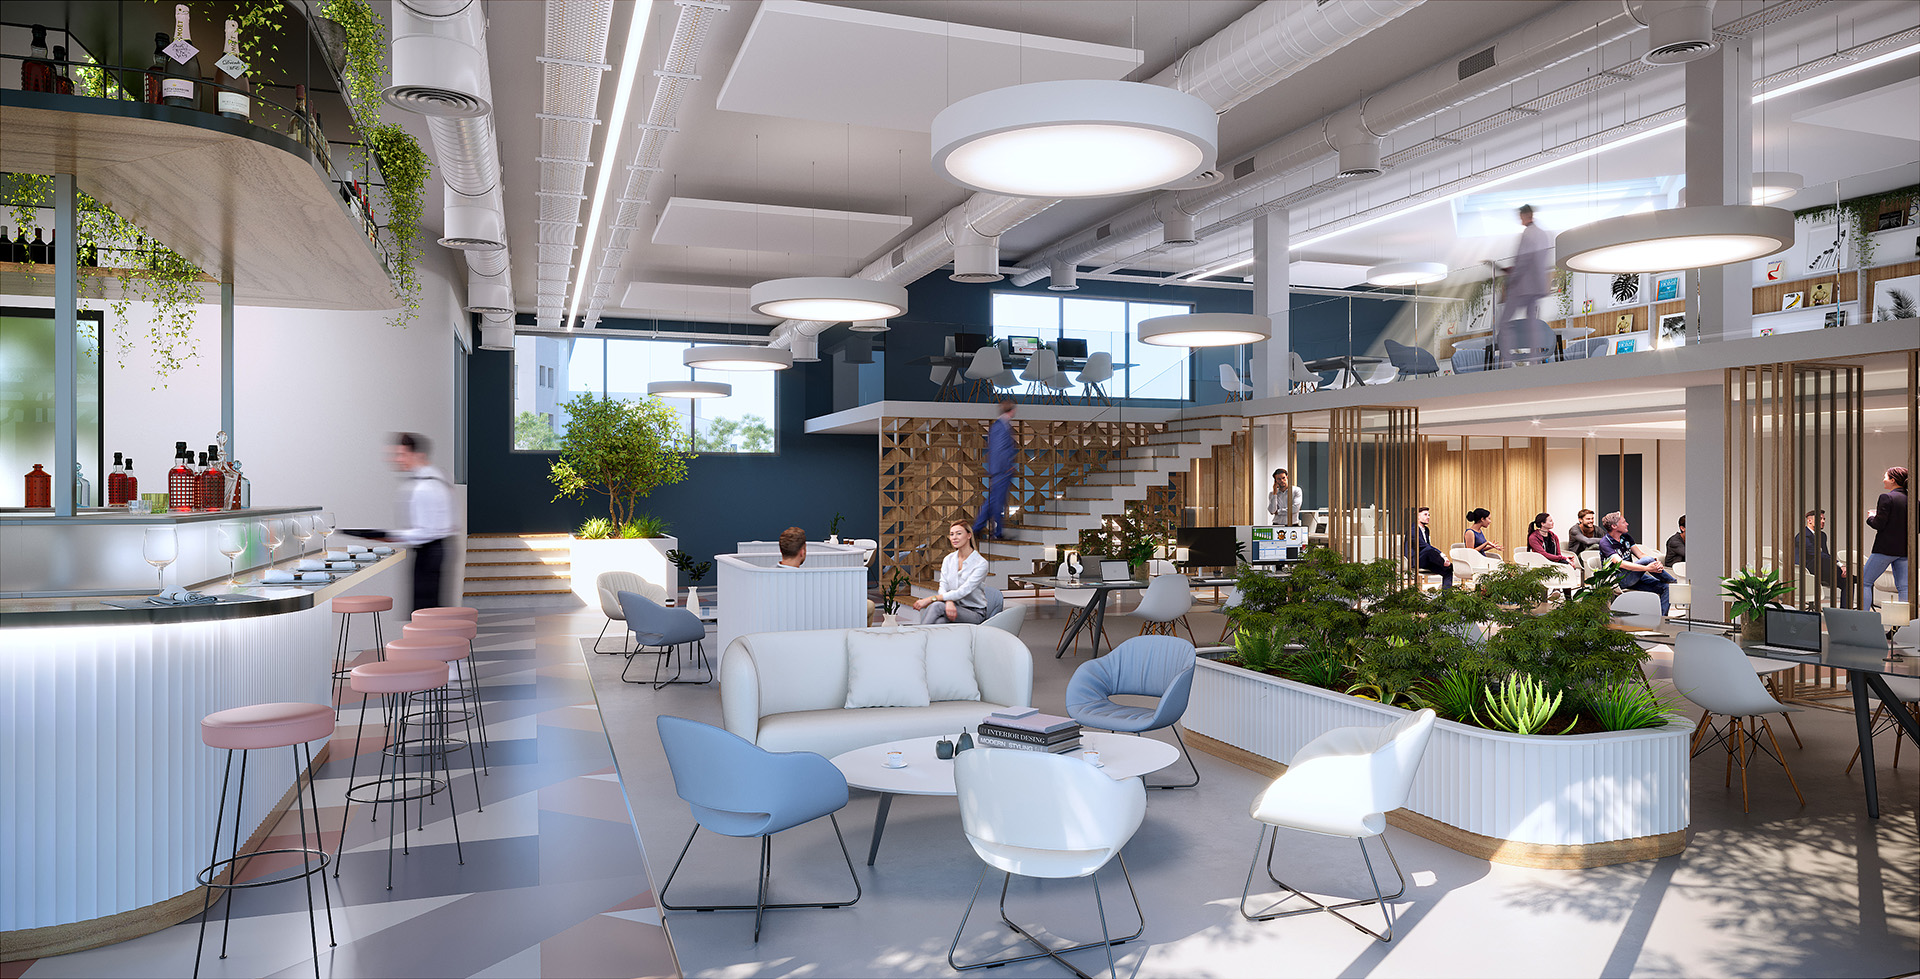 3D visualization of a modern space of relaxation and meal in company